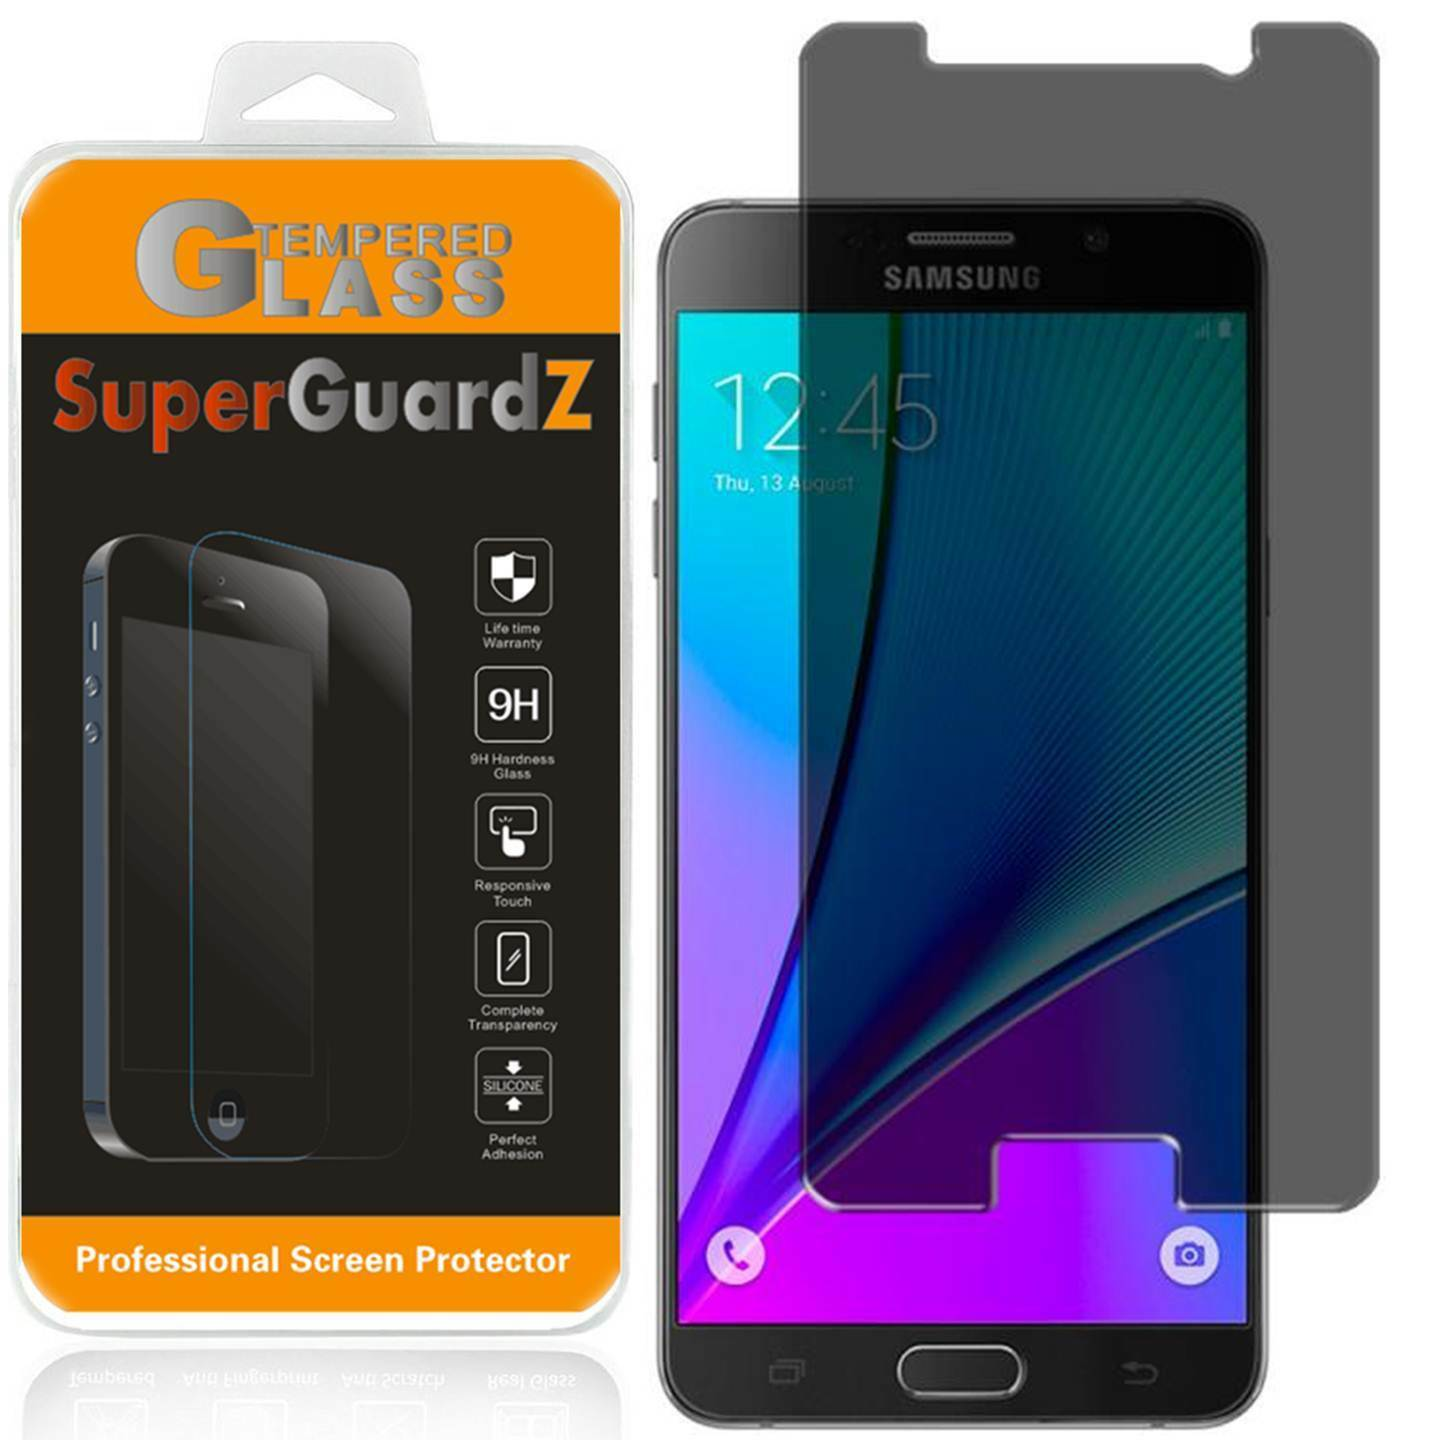 Cell phone keylogger Samsung Galaxy Note5